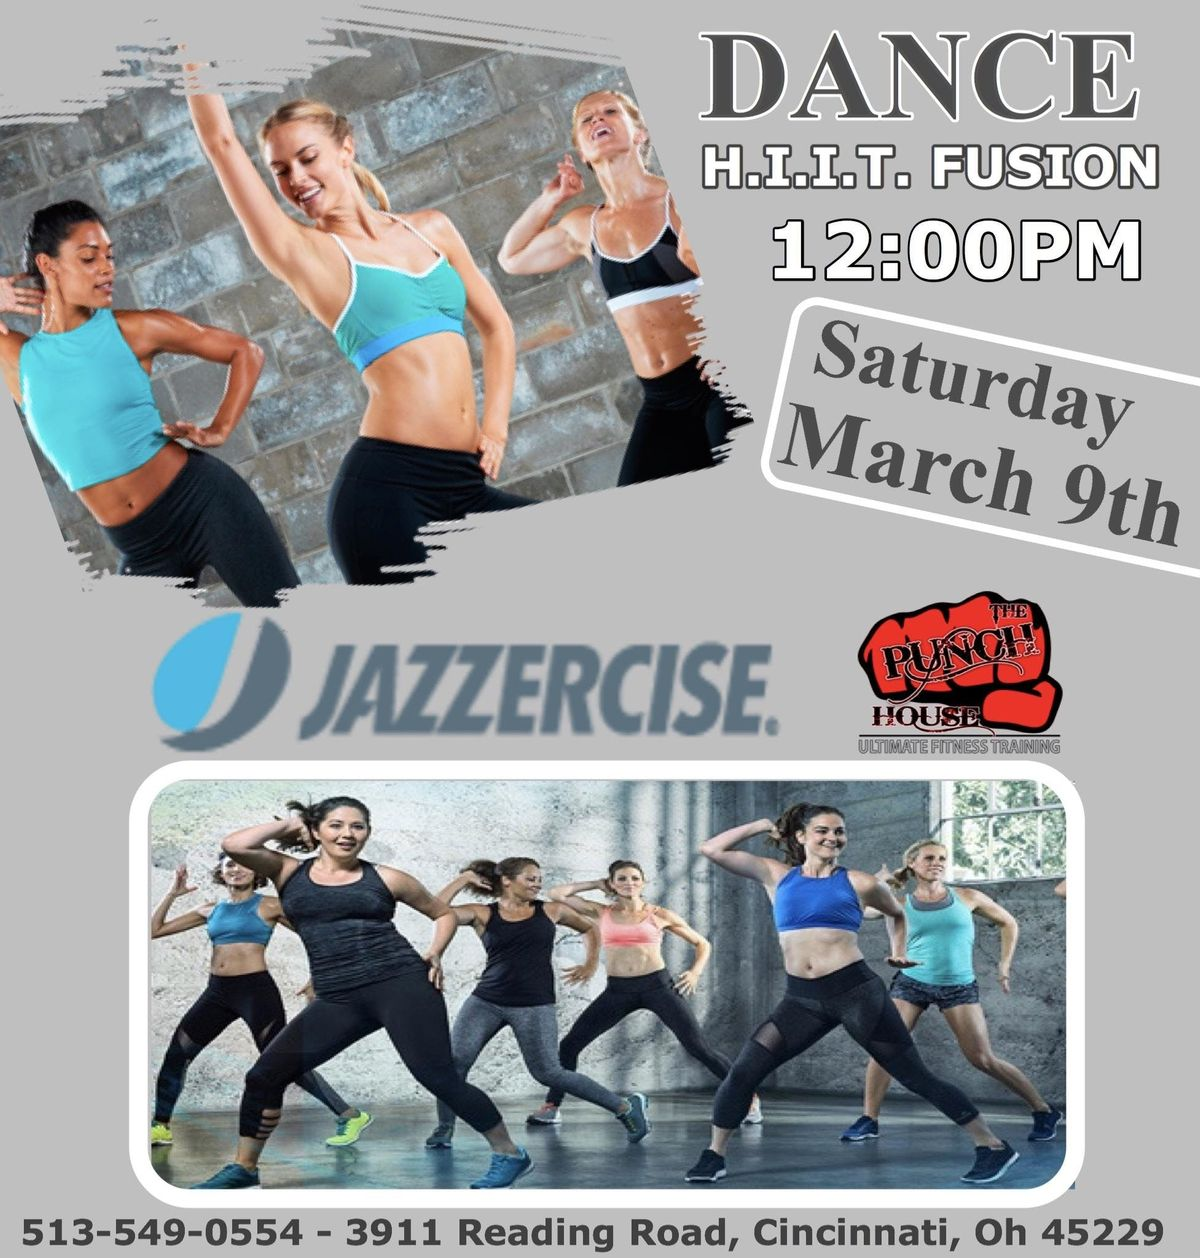 Dance HIIT Fusion By Jazzercise